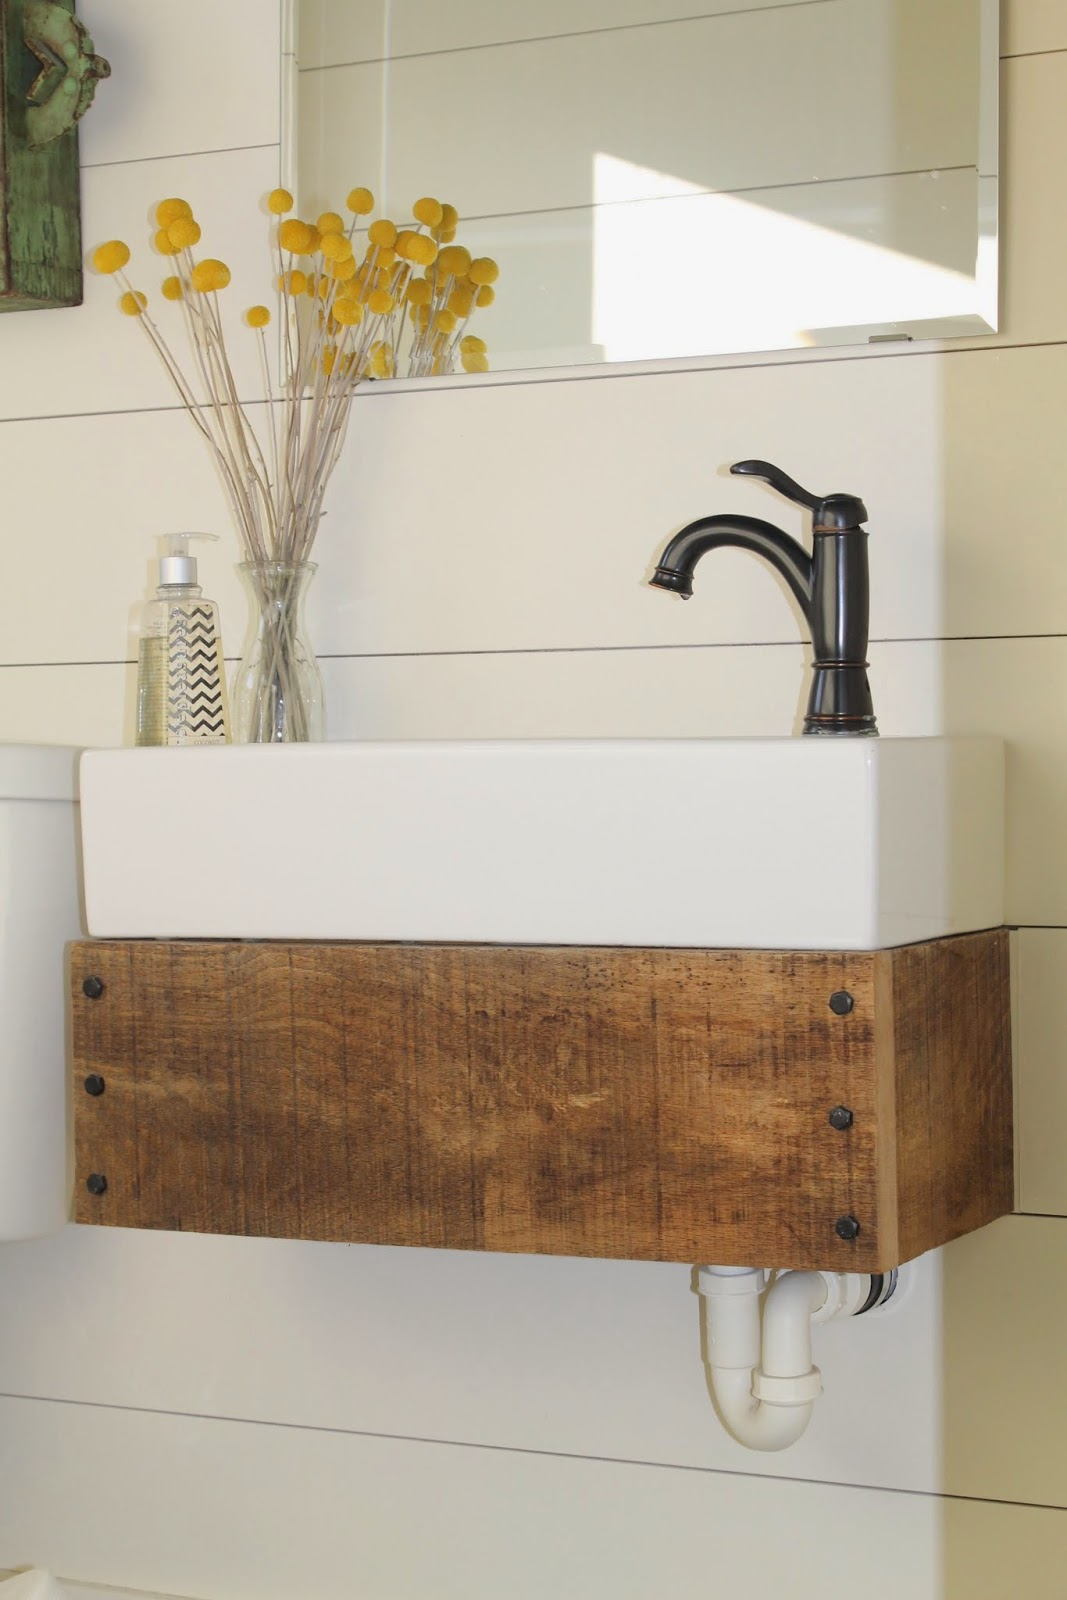 New DIY floating vanity from reclaimed wood Girl Meets Carpenter featured on Remodelaholic